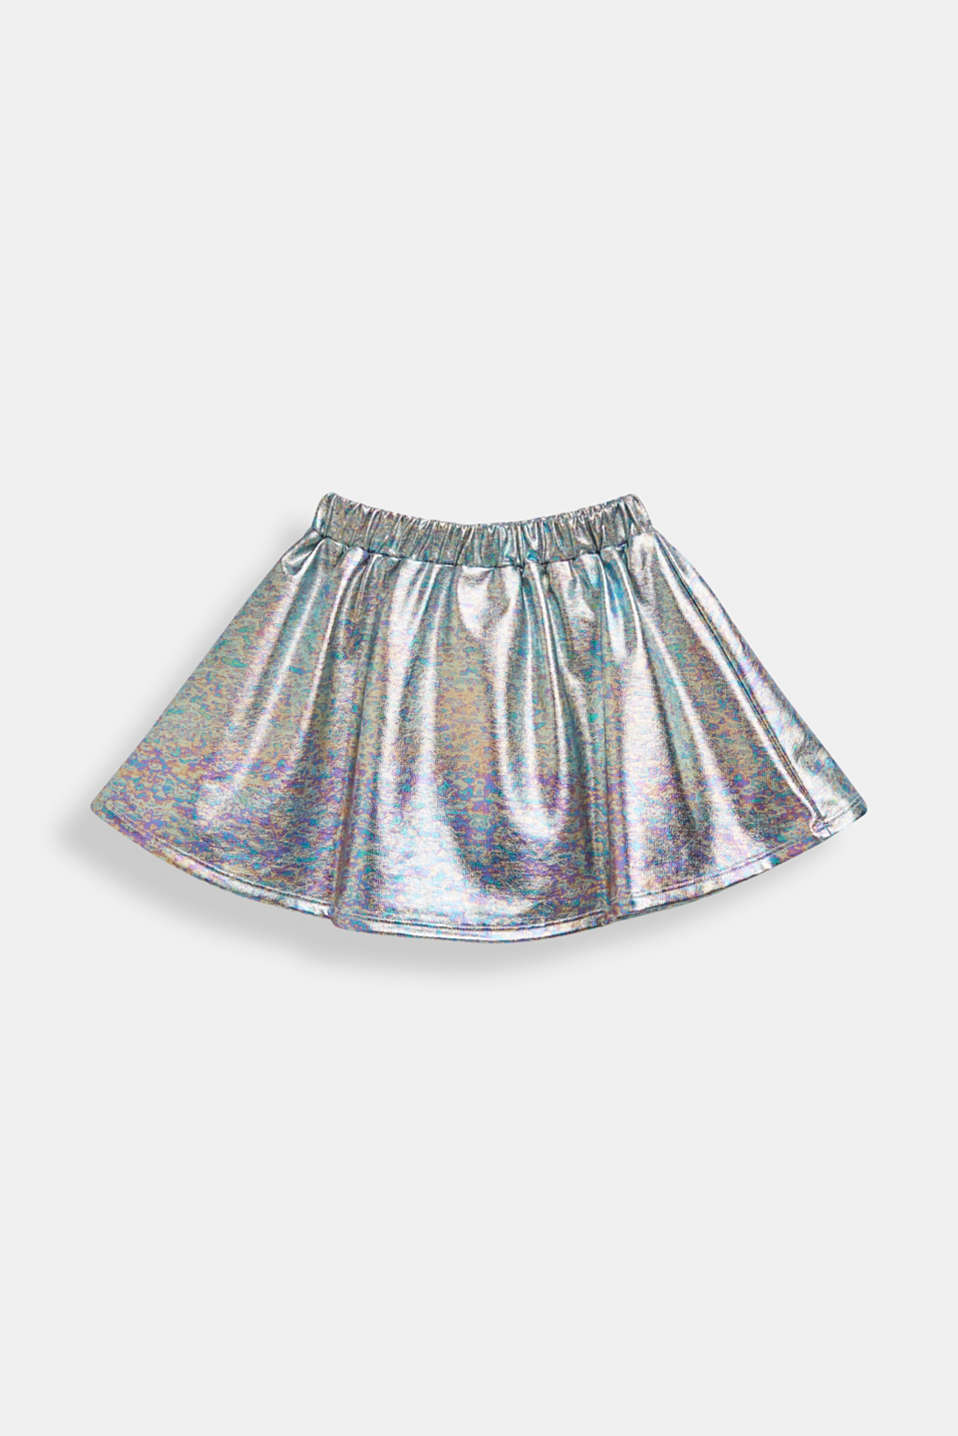 Skirt in an iridescent metallic finish, SILVER, detail image number 1